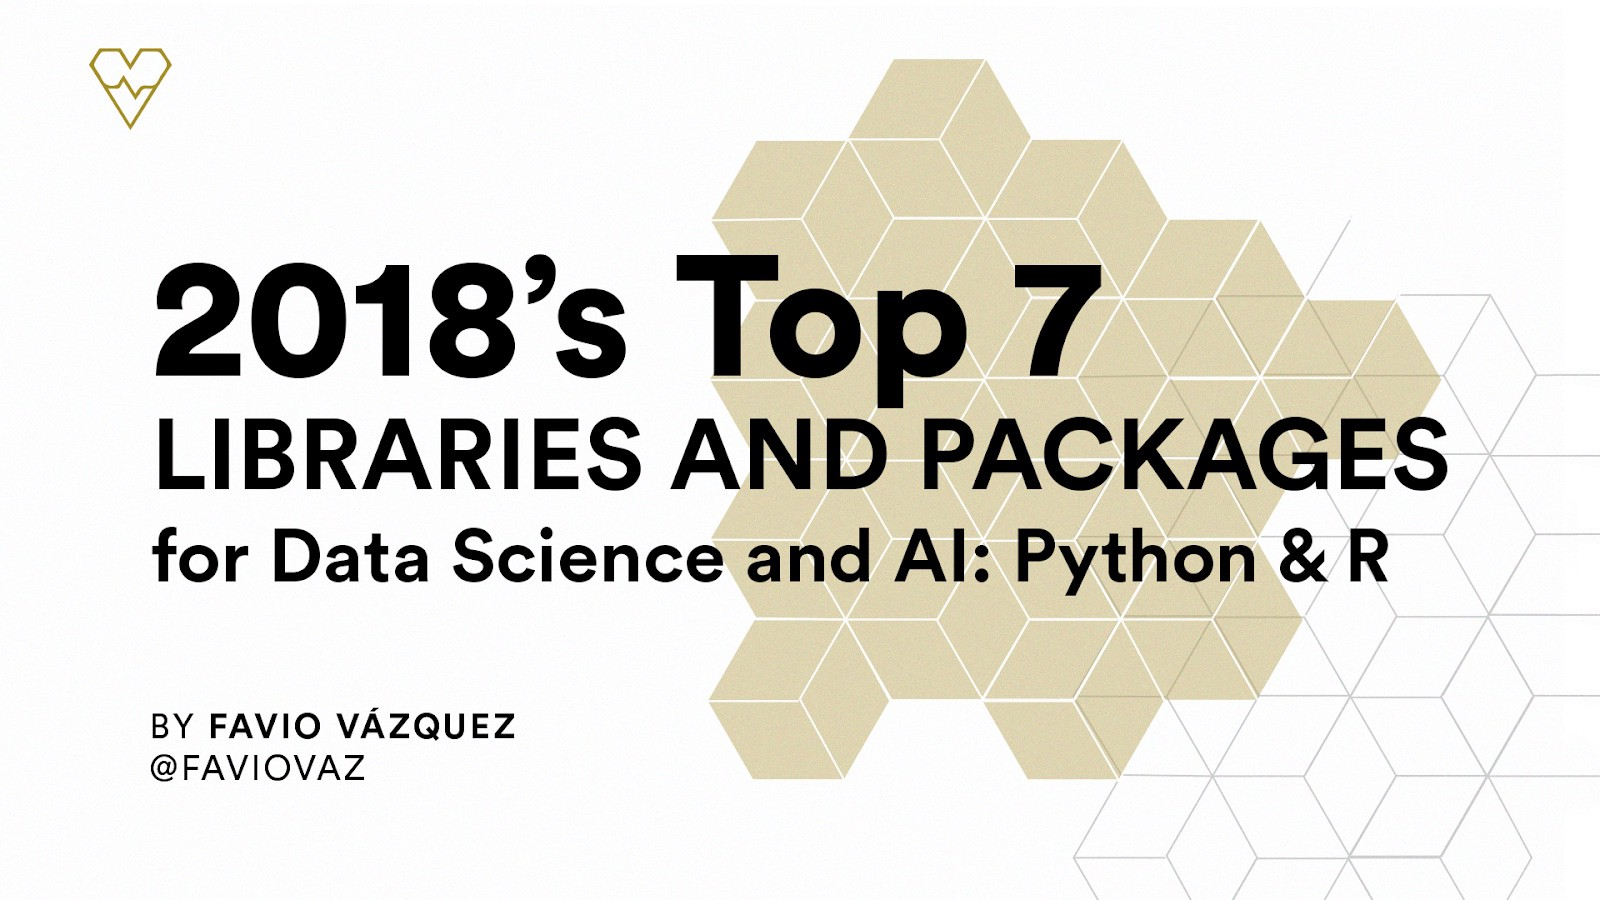 2018's Top 7 Libraries and Packages for Data Science and AI